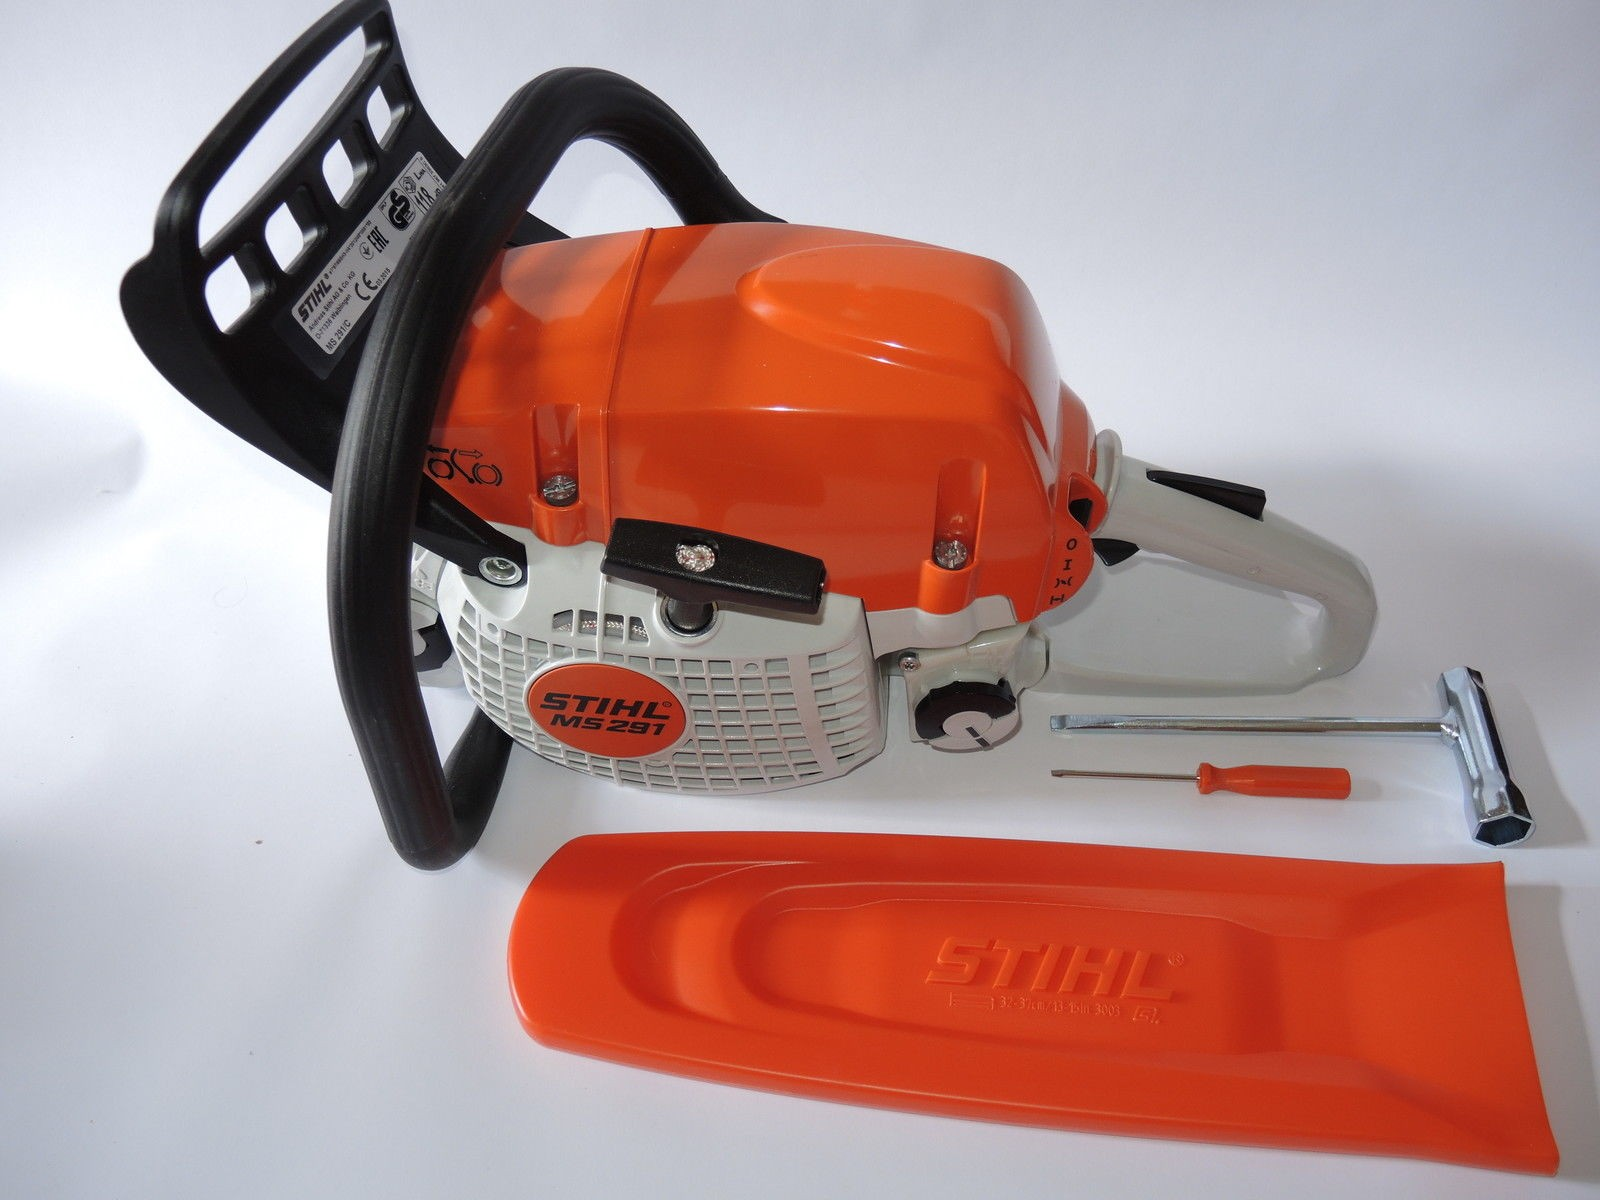 Original Stihl Chainsaws